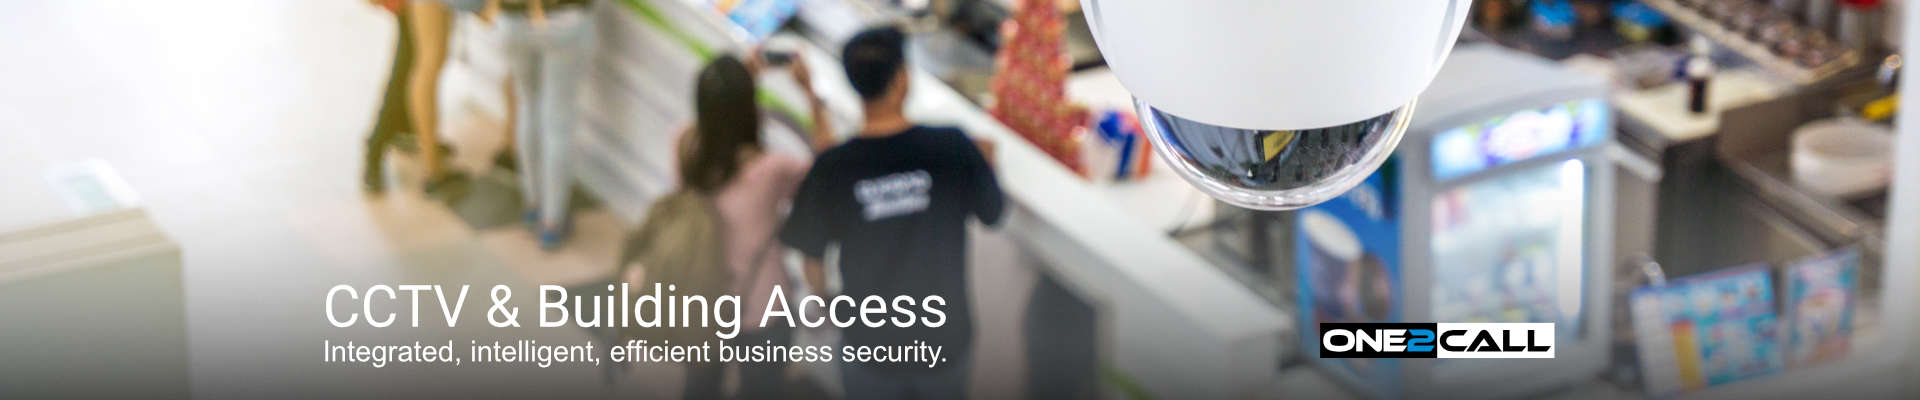 CCTV & Access - Integrated, intelligent, efficient business security.